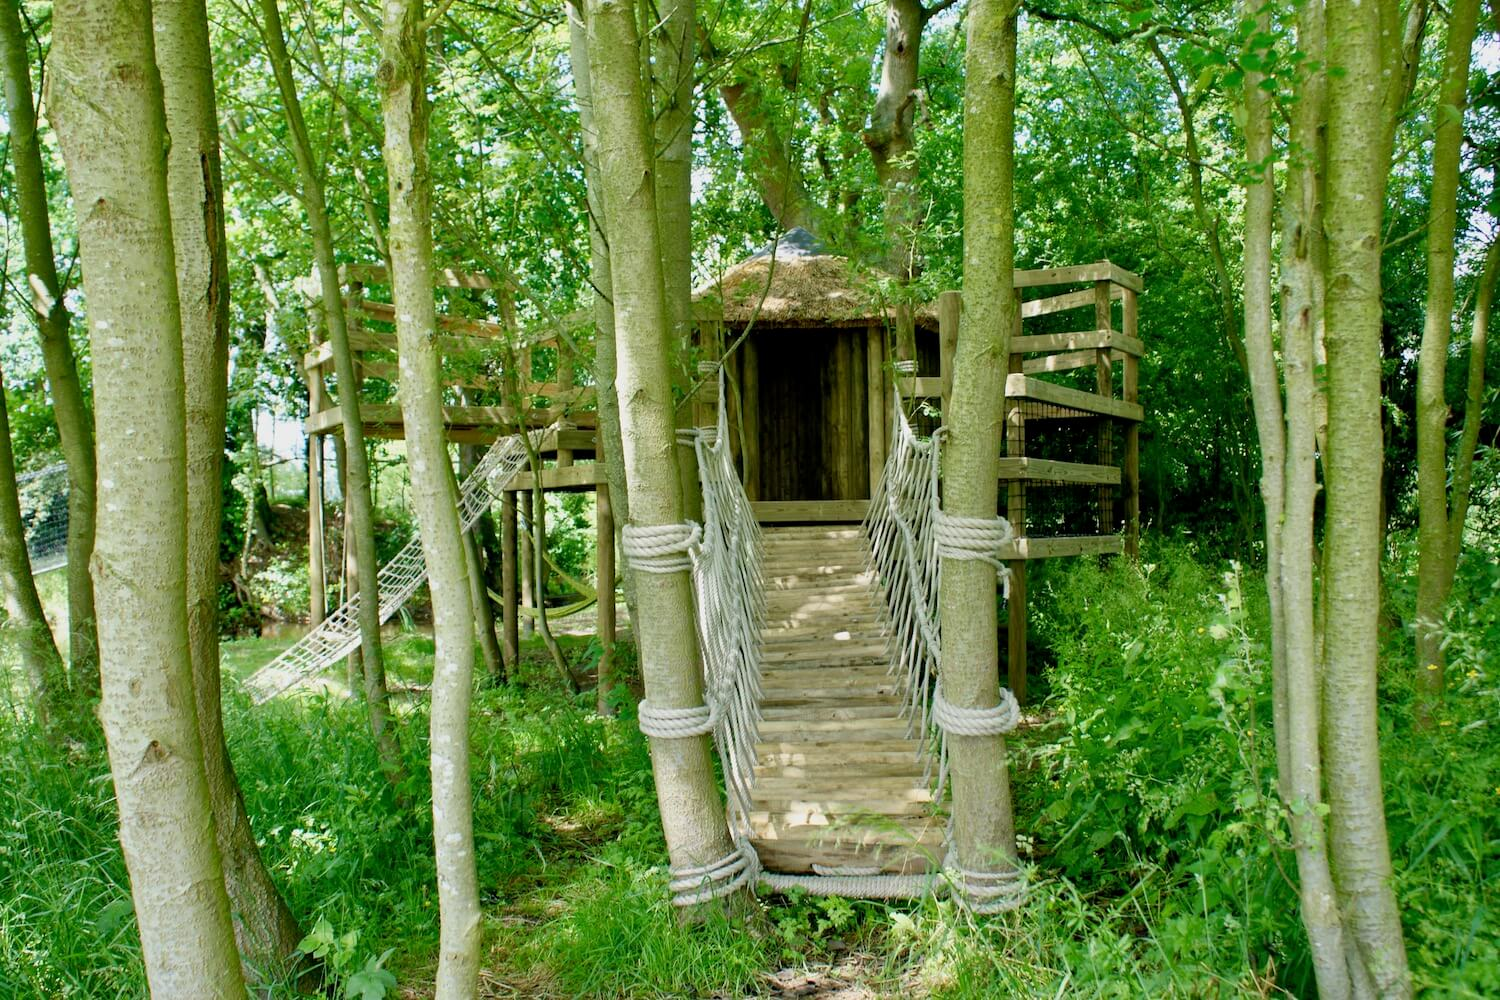 'Fun' treehouses